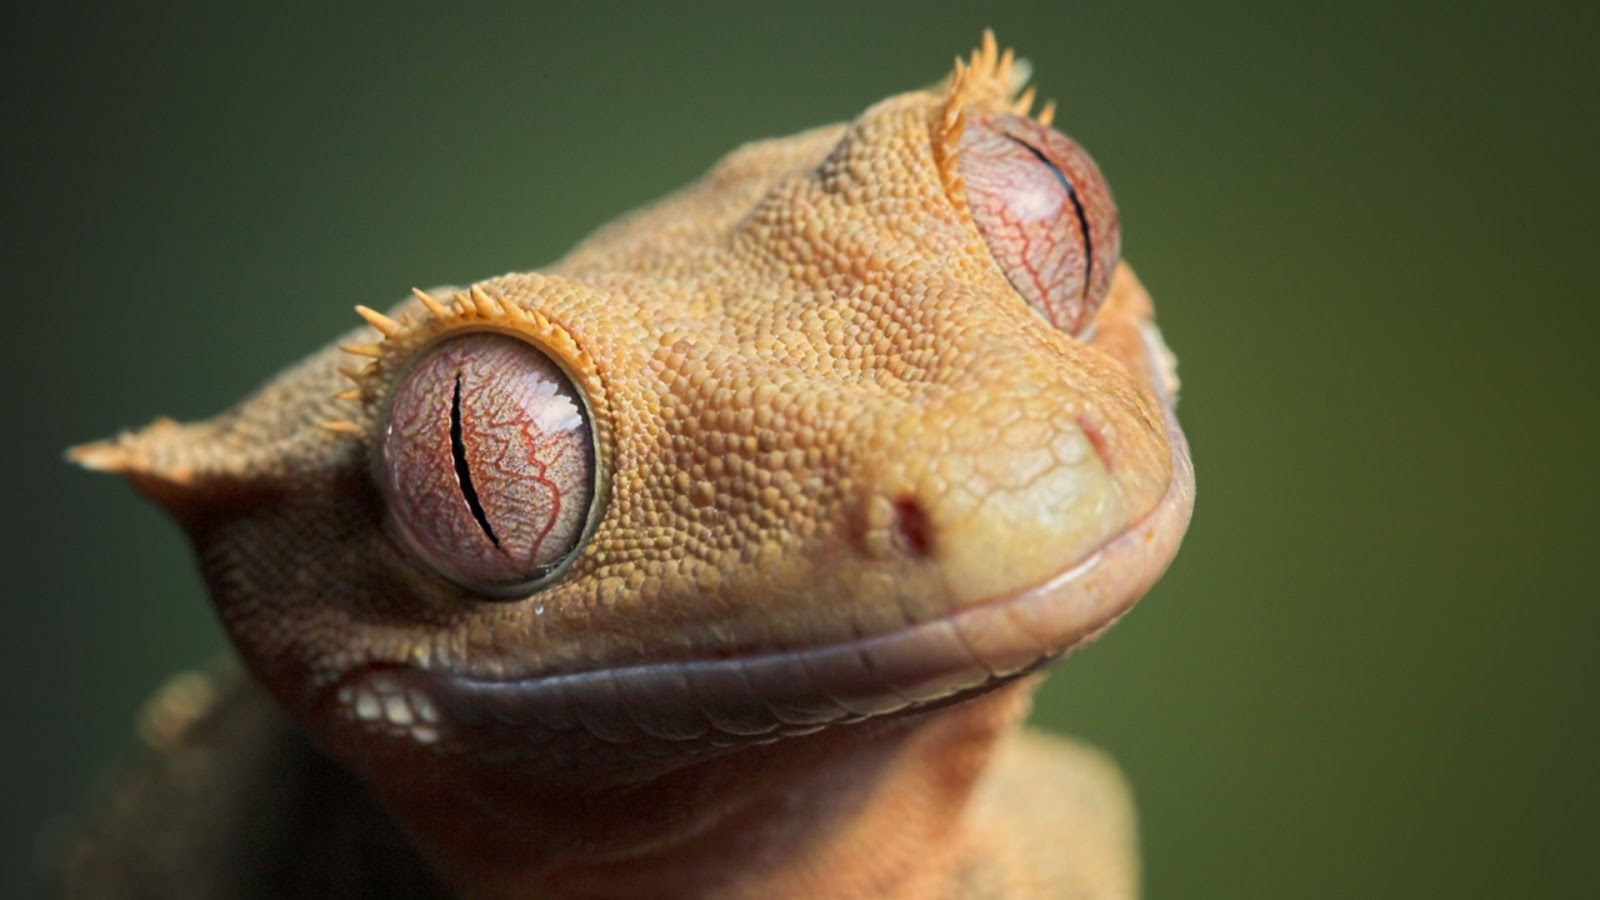 High Resolution Wallpaper   Reptile 1600x900 px